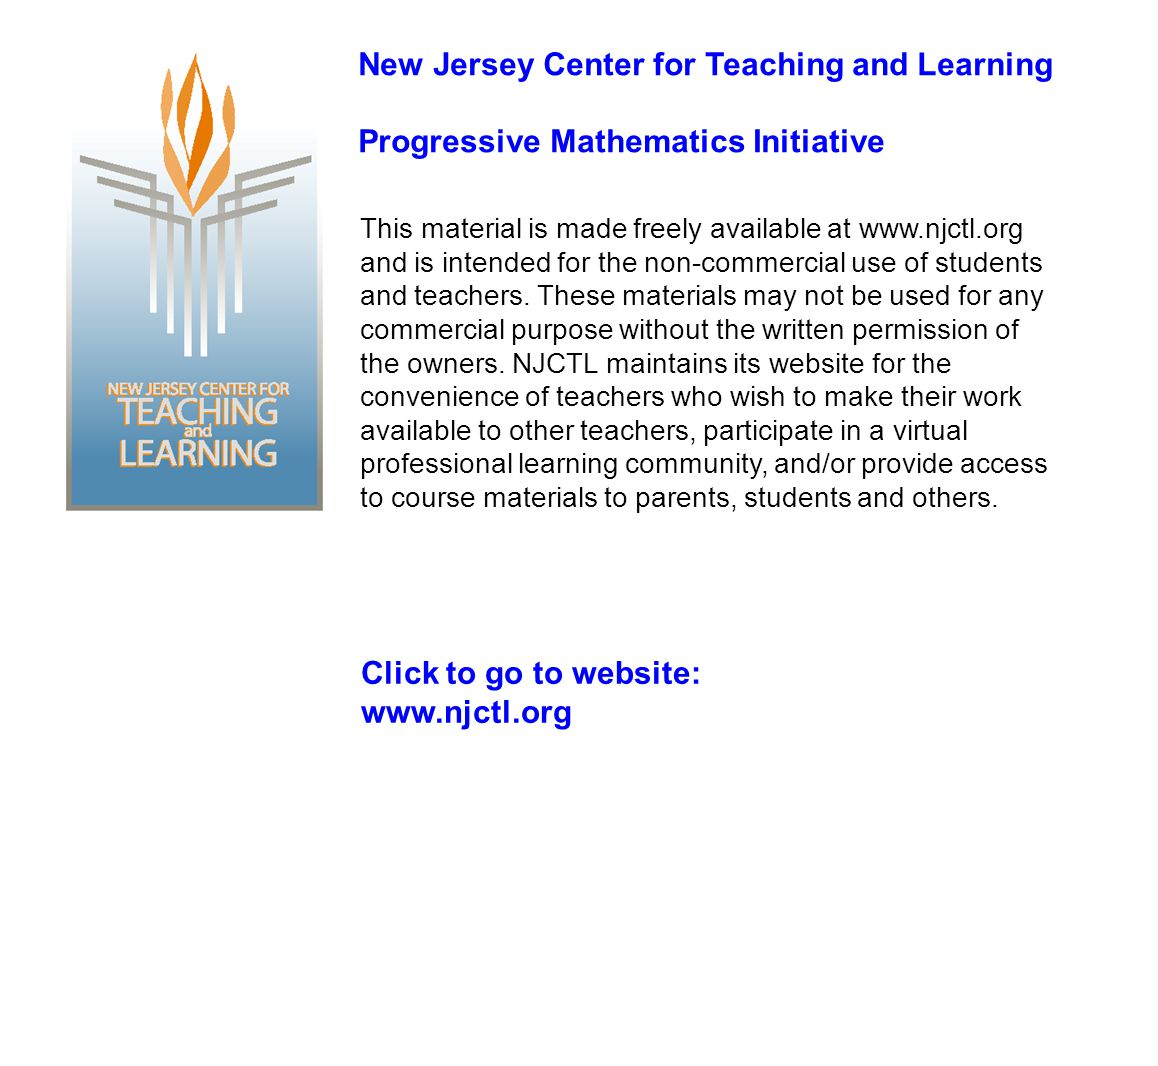 This material is made freely available at www.njctl.org and is intended for the non-commercial use of students and teachers.